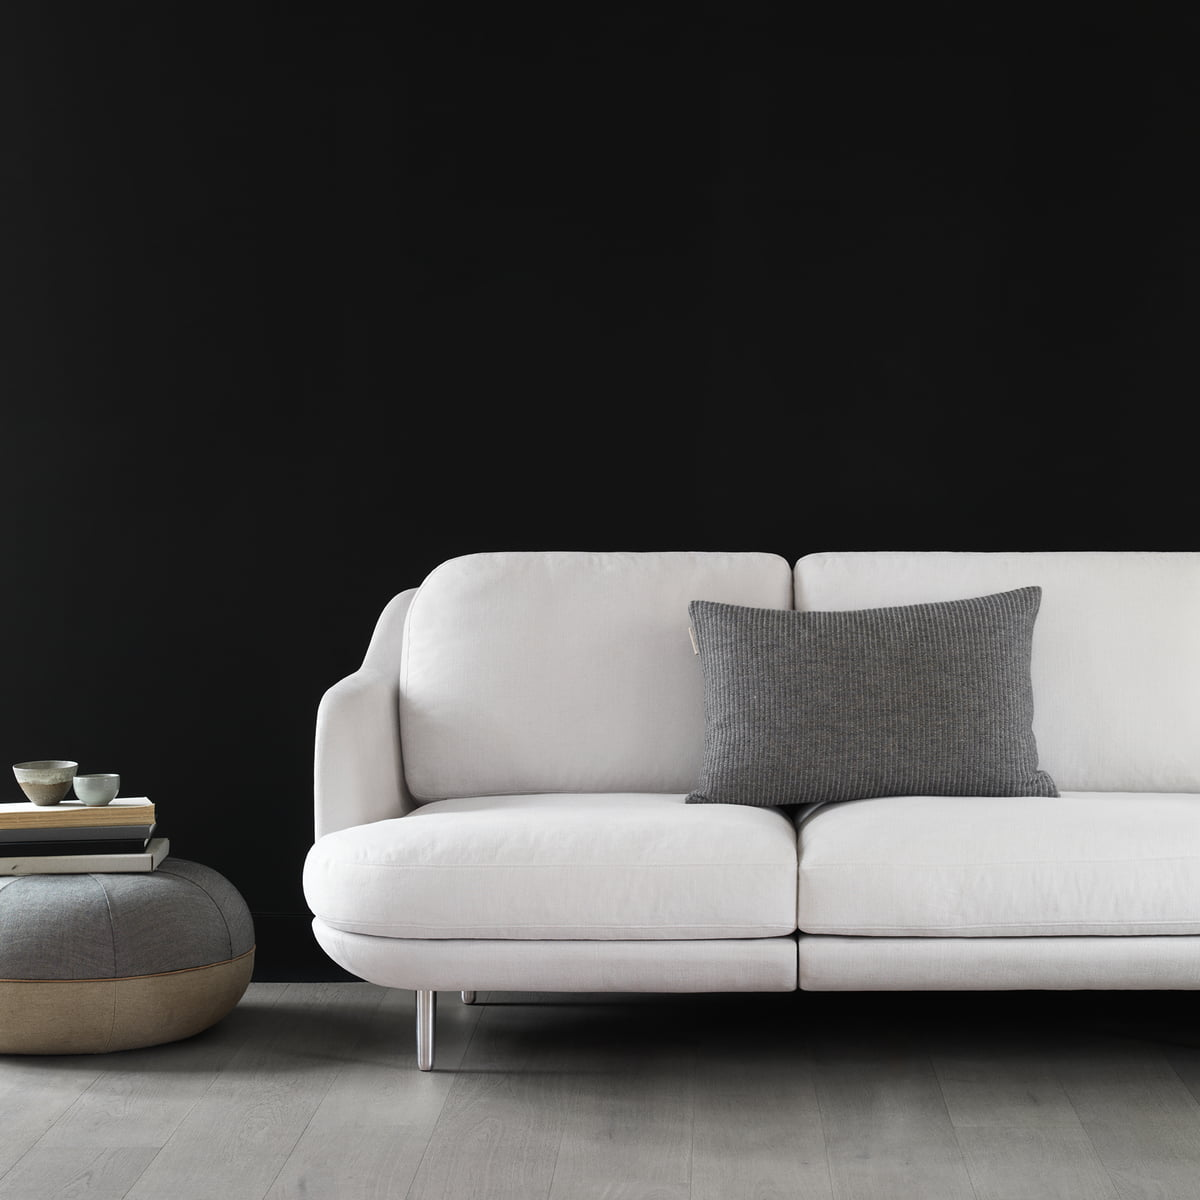 The Fritz Hansen   Pouf By Cecilie Manz Next To The Sofa